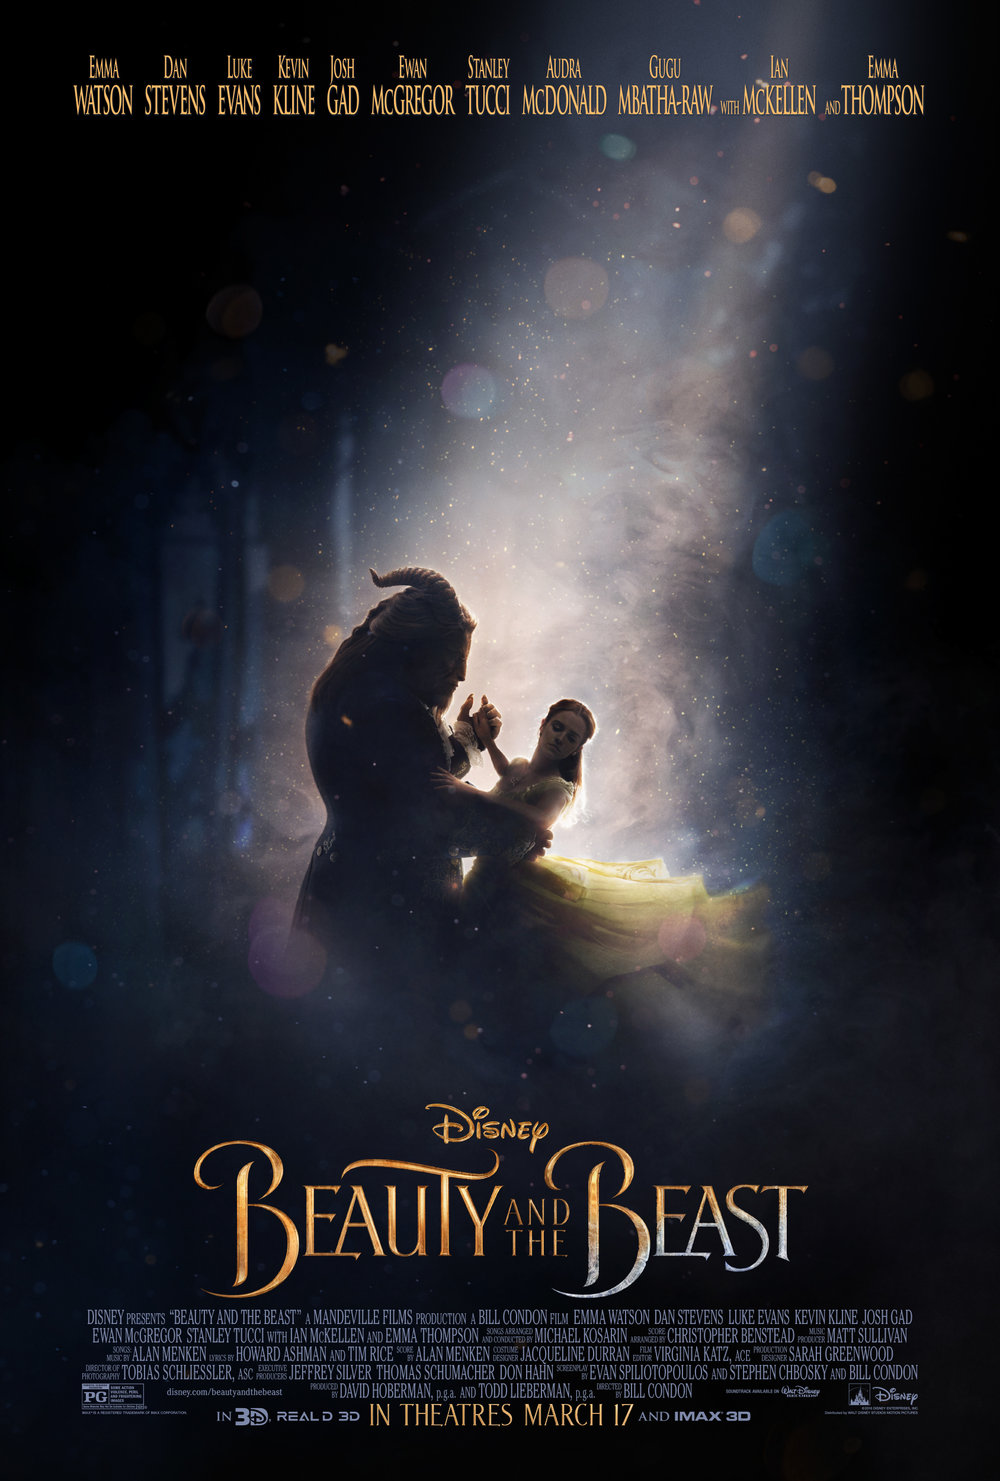 disney-releases-gorgeous-poster-for-beauty-and-the-beast1